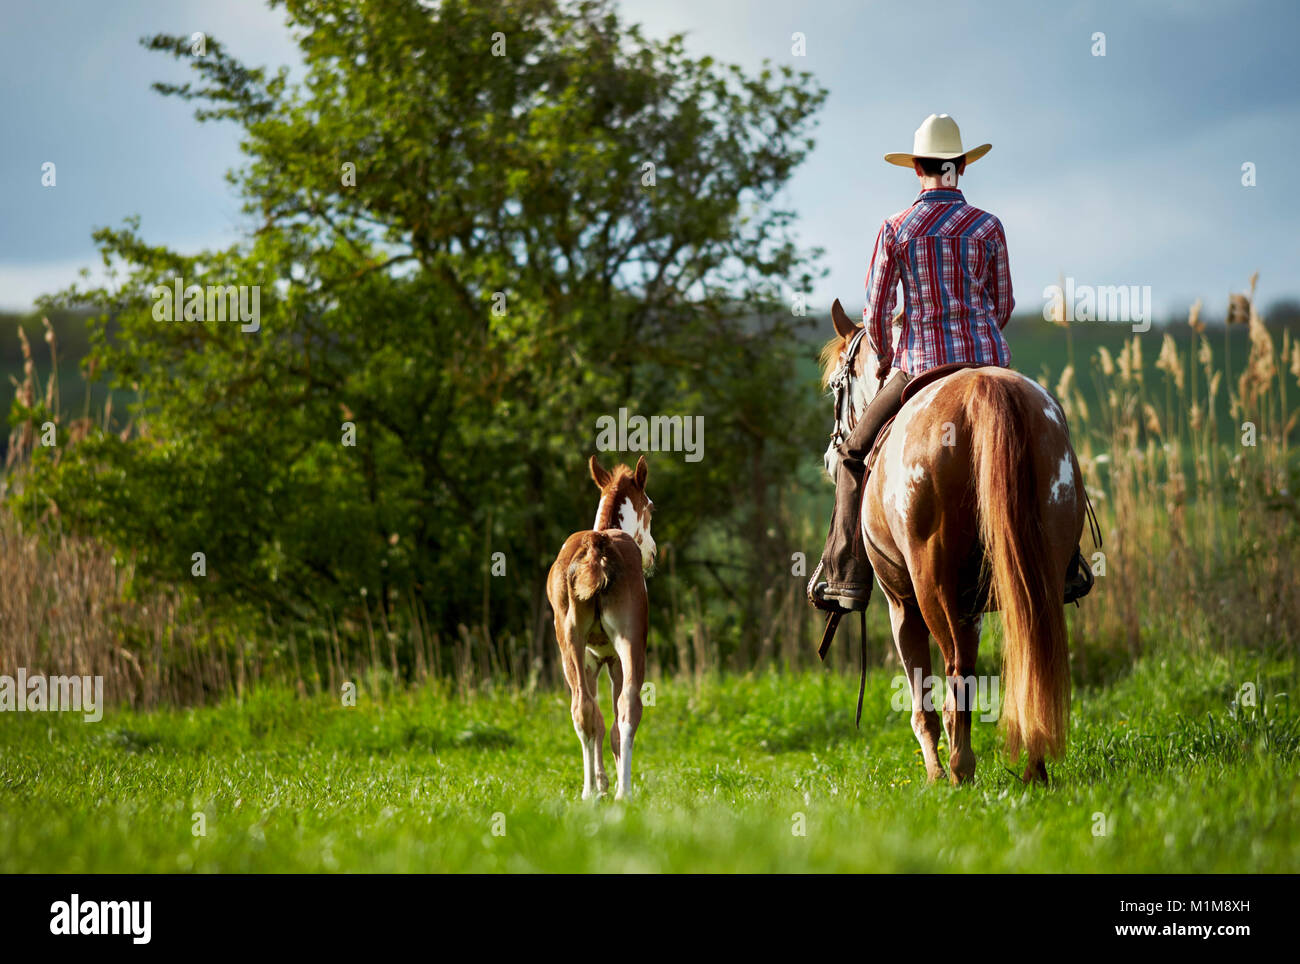 Pintabian. Rider on mare accompanied by foal on a cross-country ride. Germany - Stock Image